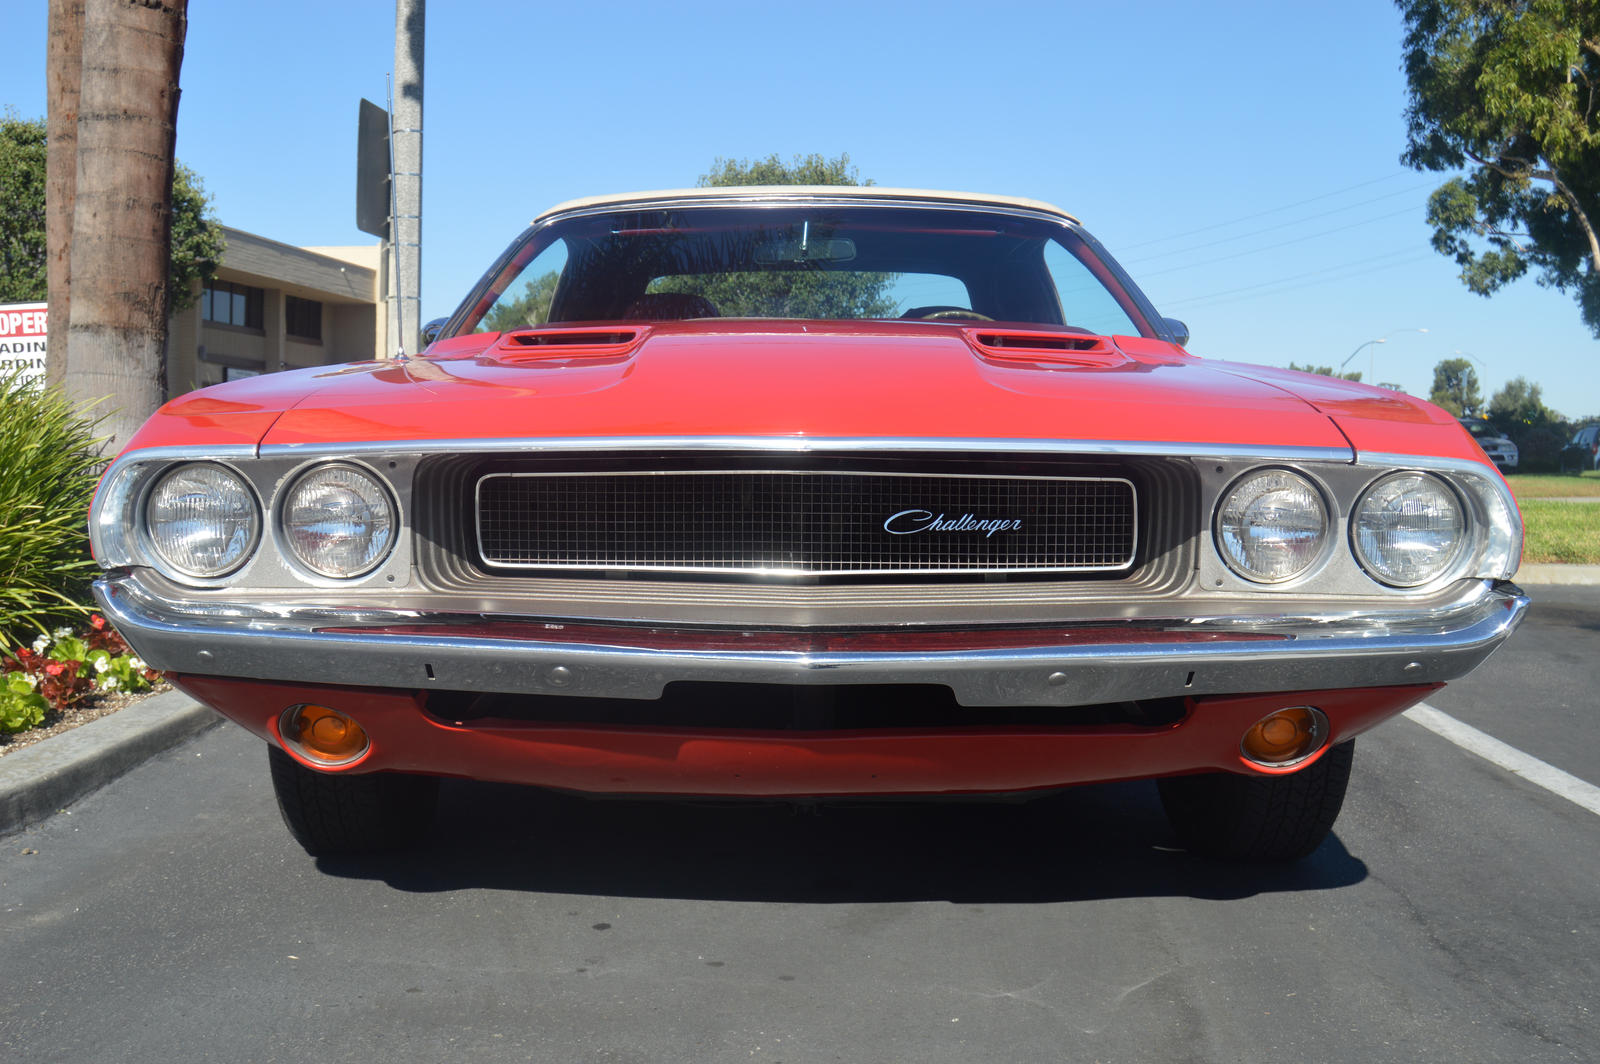 1970 dodge challenger convertible by brooklyn47 on deviantart. Black Bedroom Furniture Sets. Home Design Ideas